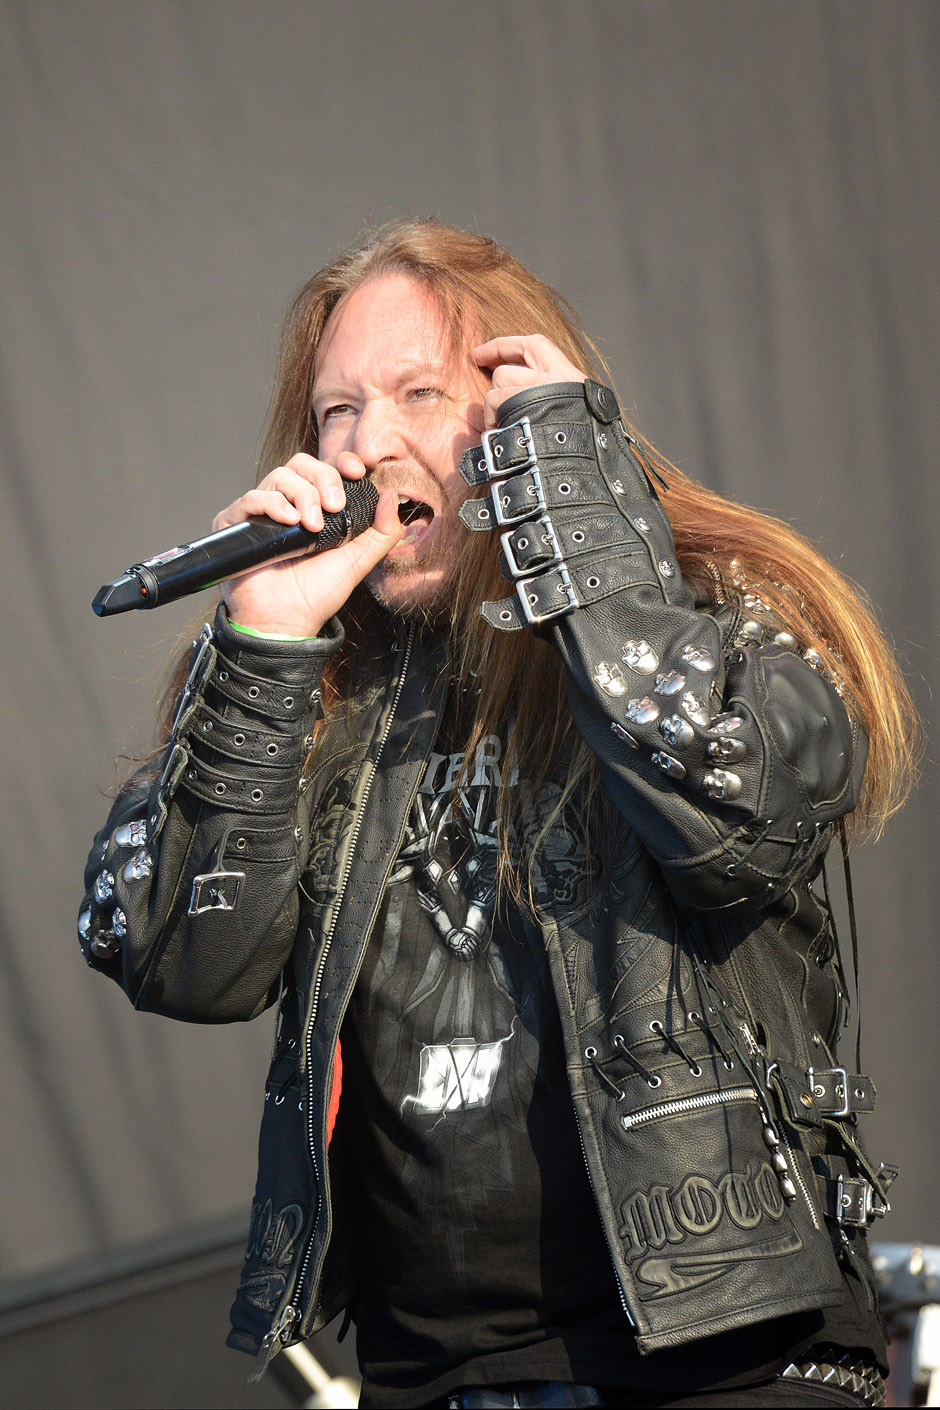 Hammerfall live,  Wacken Open Air 2012